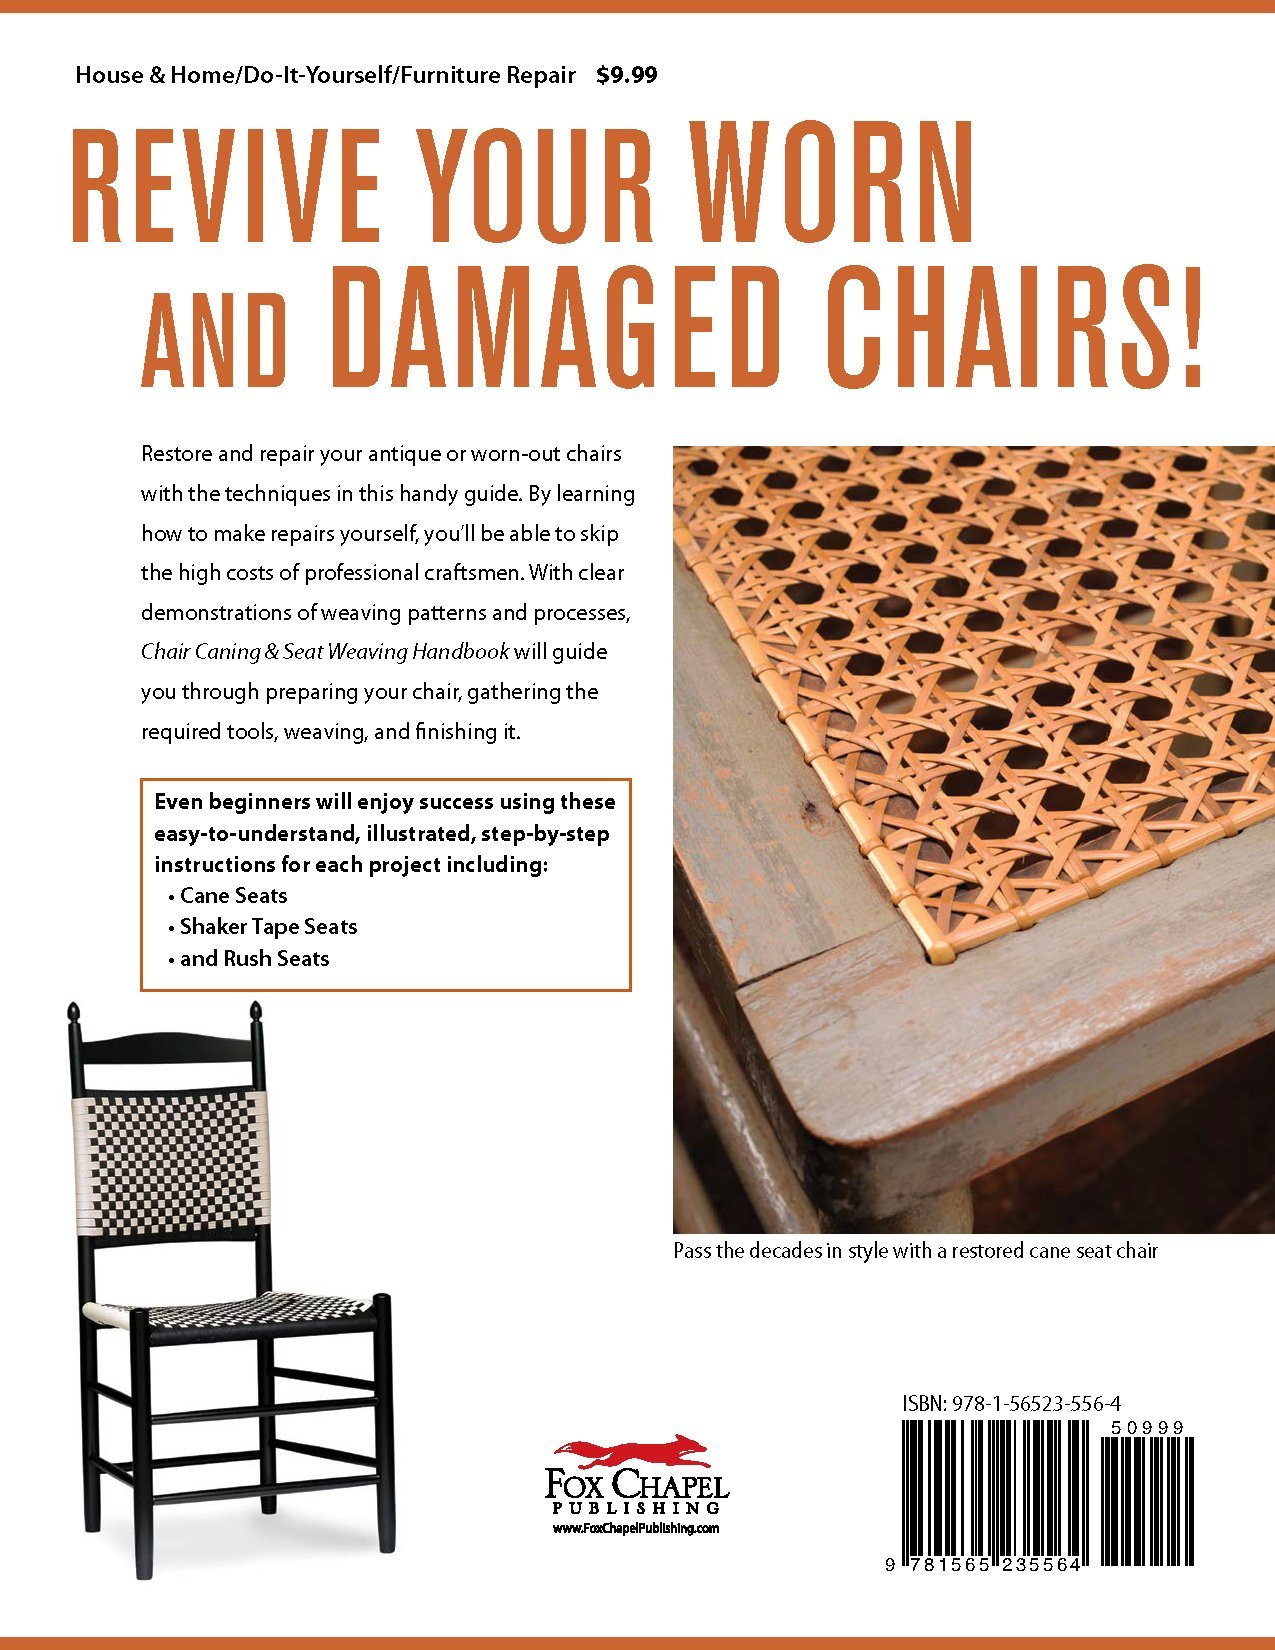 Chair Caning & Seat Weaving Handbook Illustrated Directions for